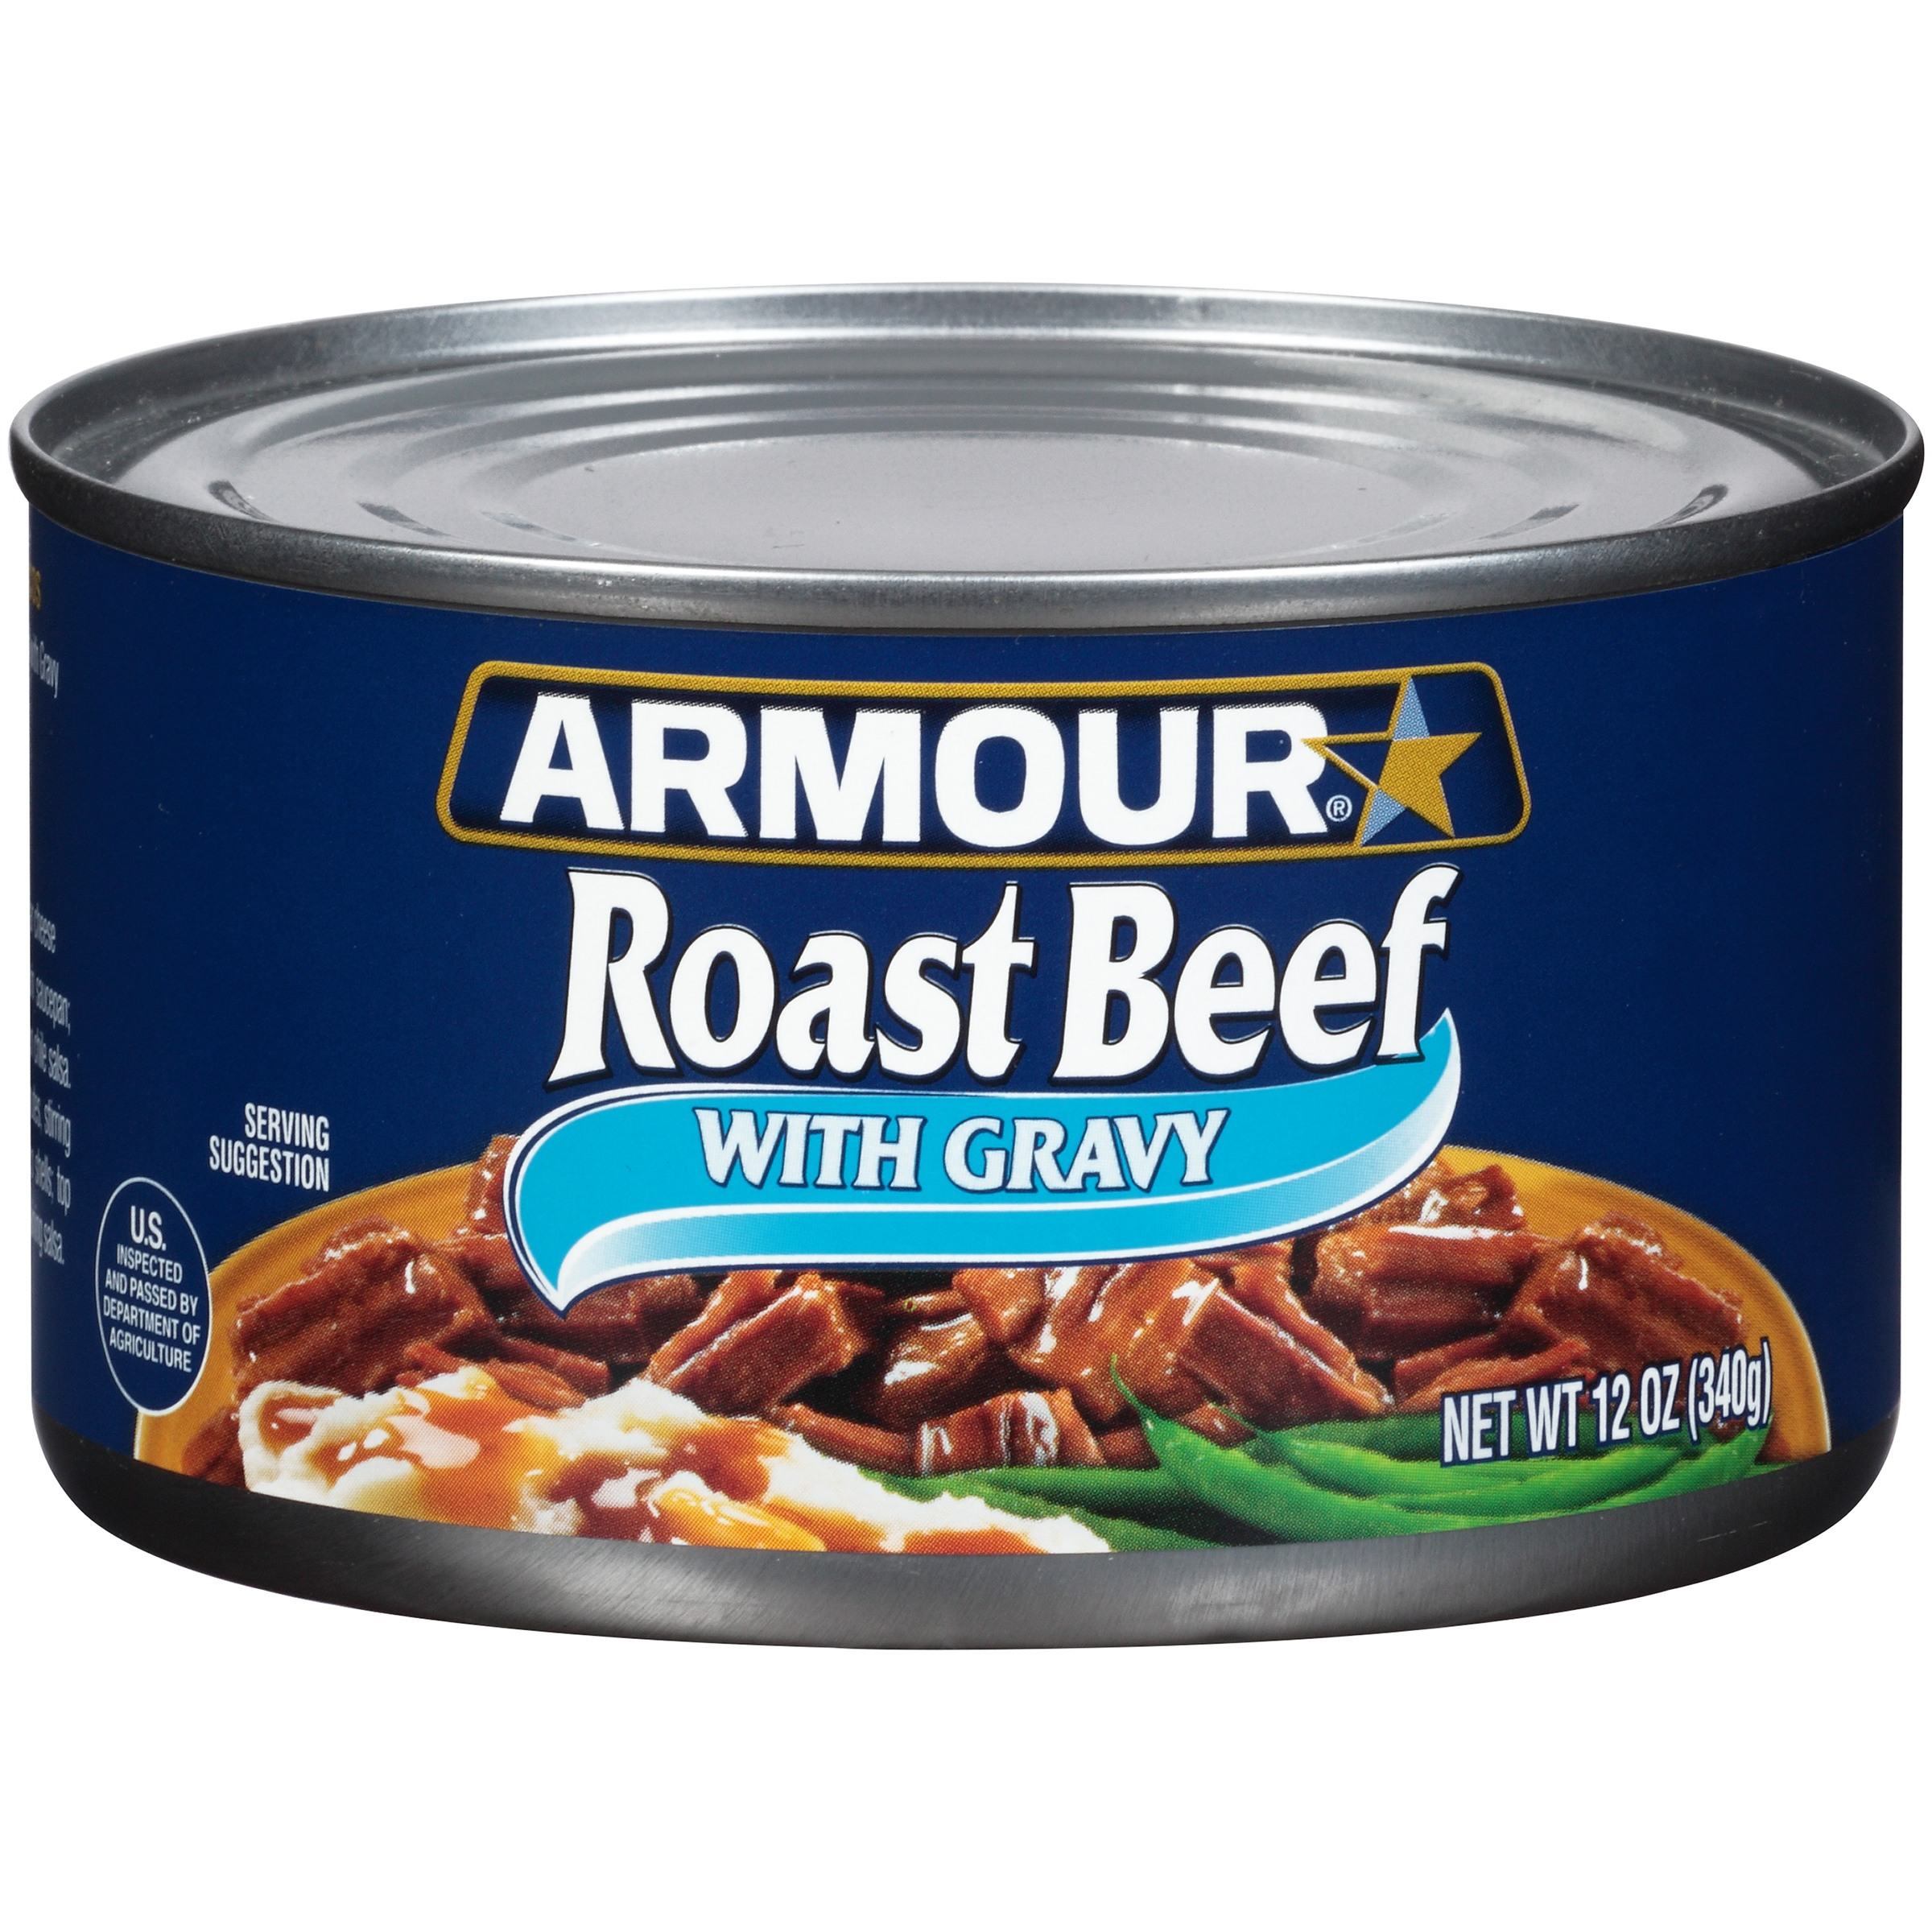 Armour Roast Beef with Gravy 12 oz. Can by PINNACLE FOODS GROUP LLC